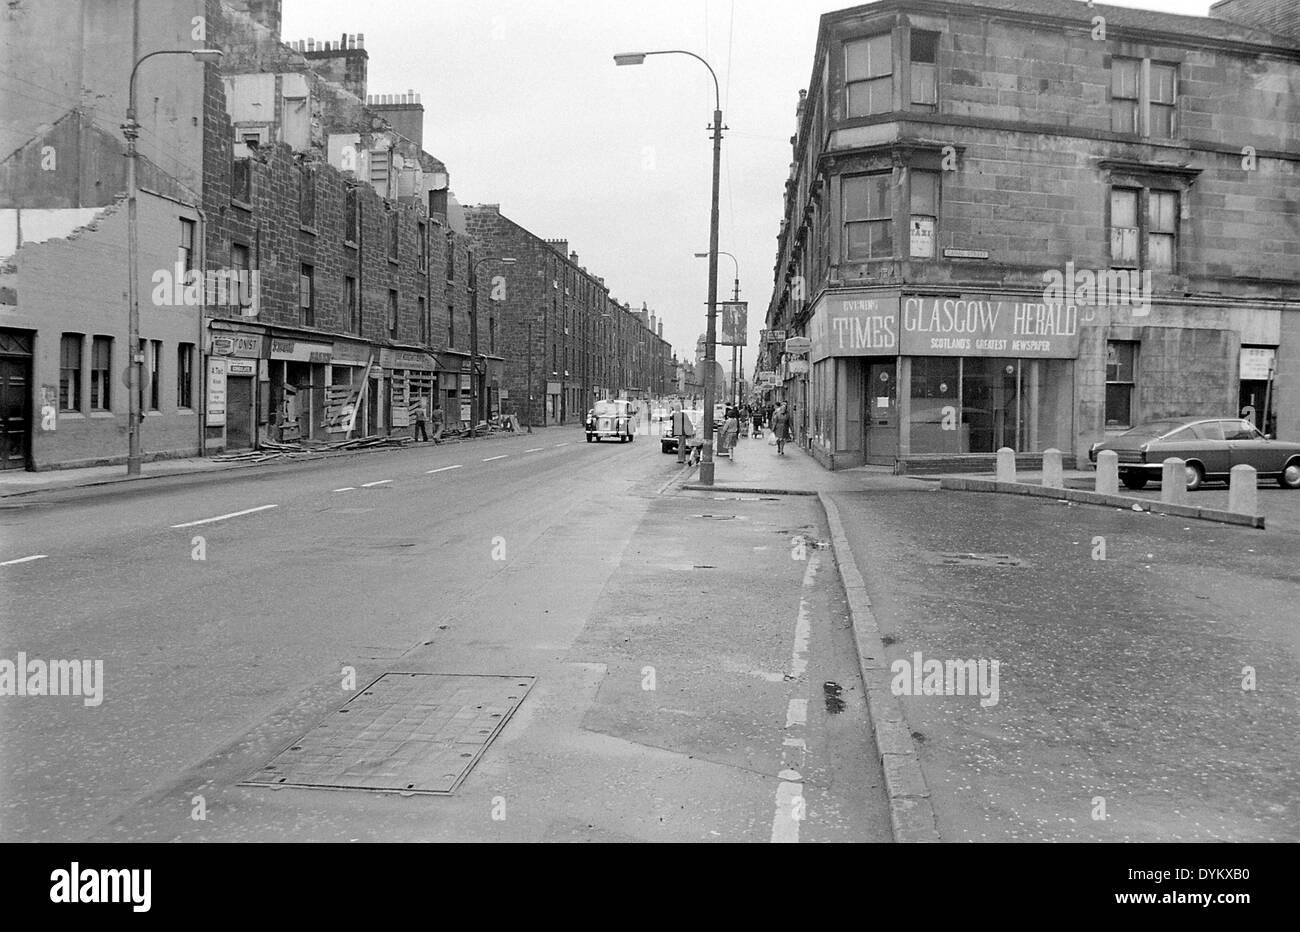 Looking down Glasgow road in Clydebank. John Brown's Shipyard gatehouse on the left,almost demolished, and the tenements also - Stock Image